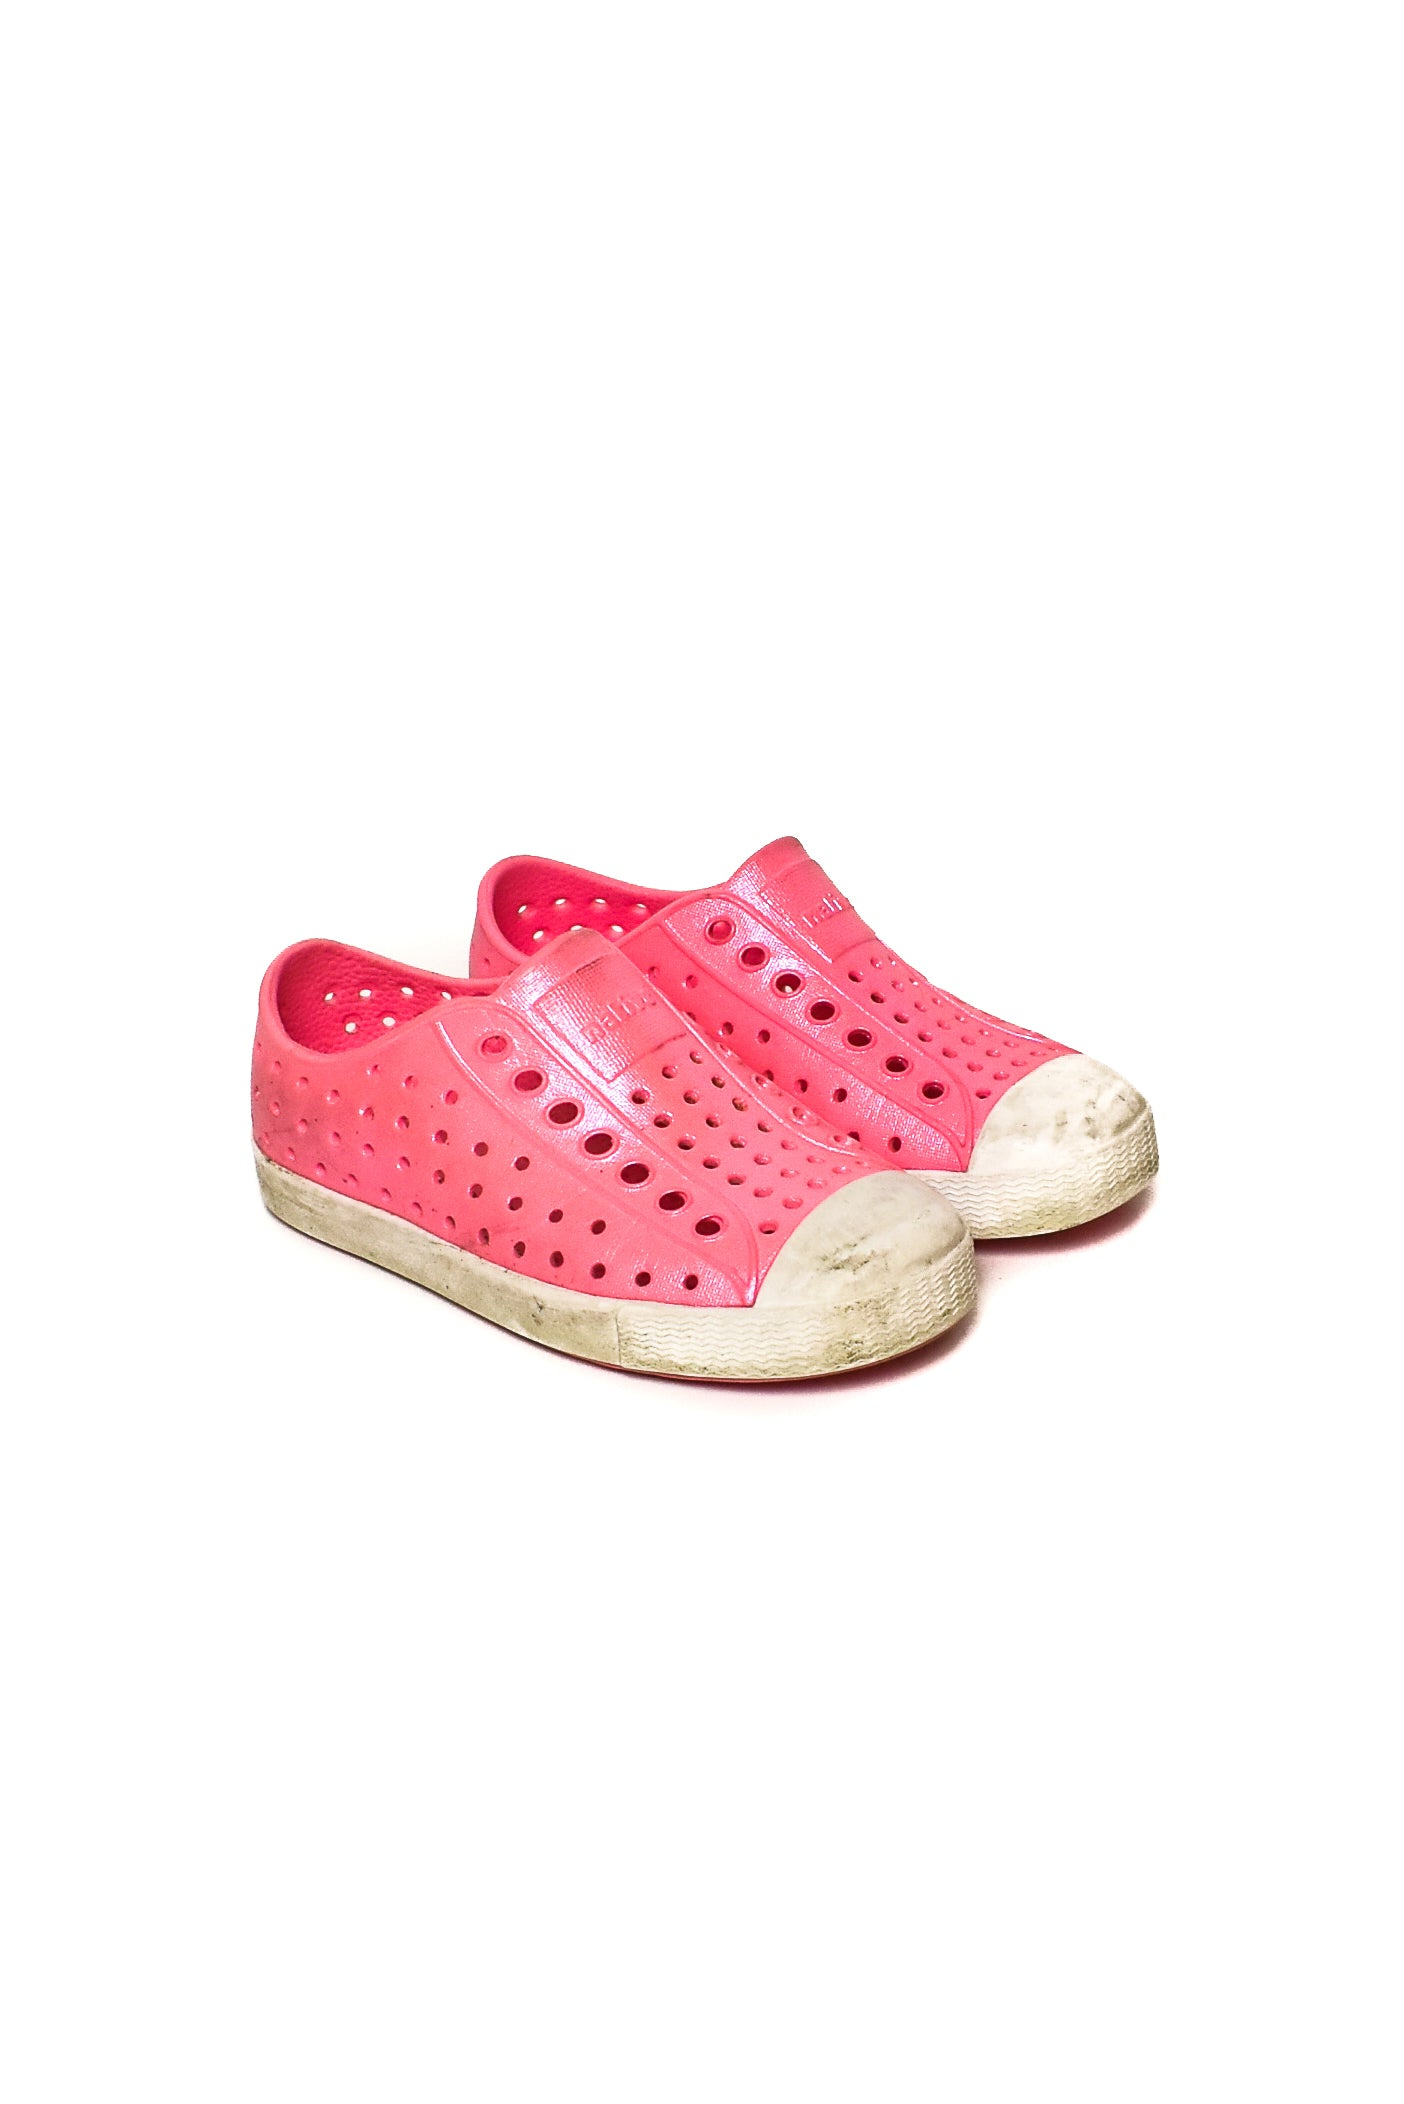 10007654 Native Shoes Kids ~ Shoes 4T (US 10) at Retykle